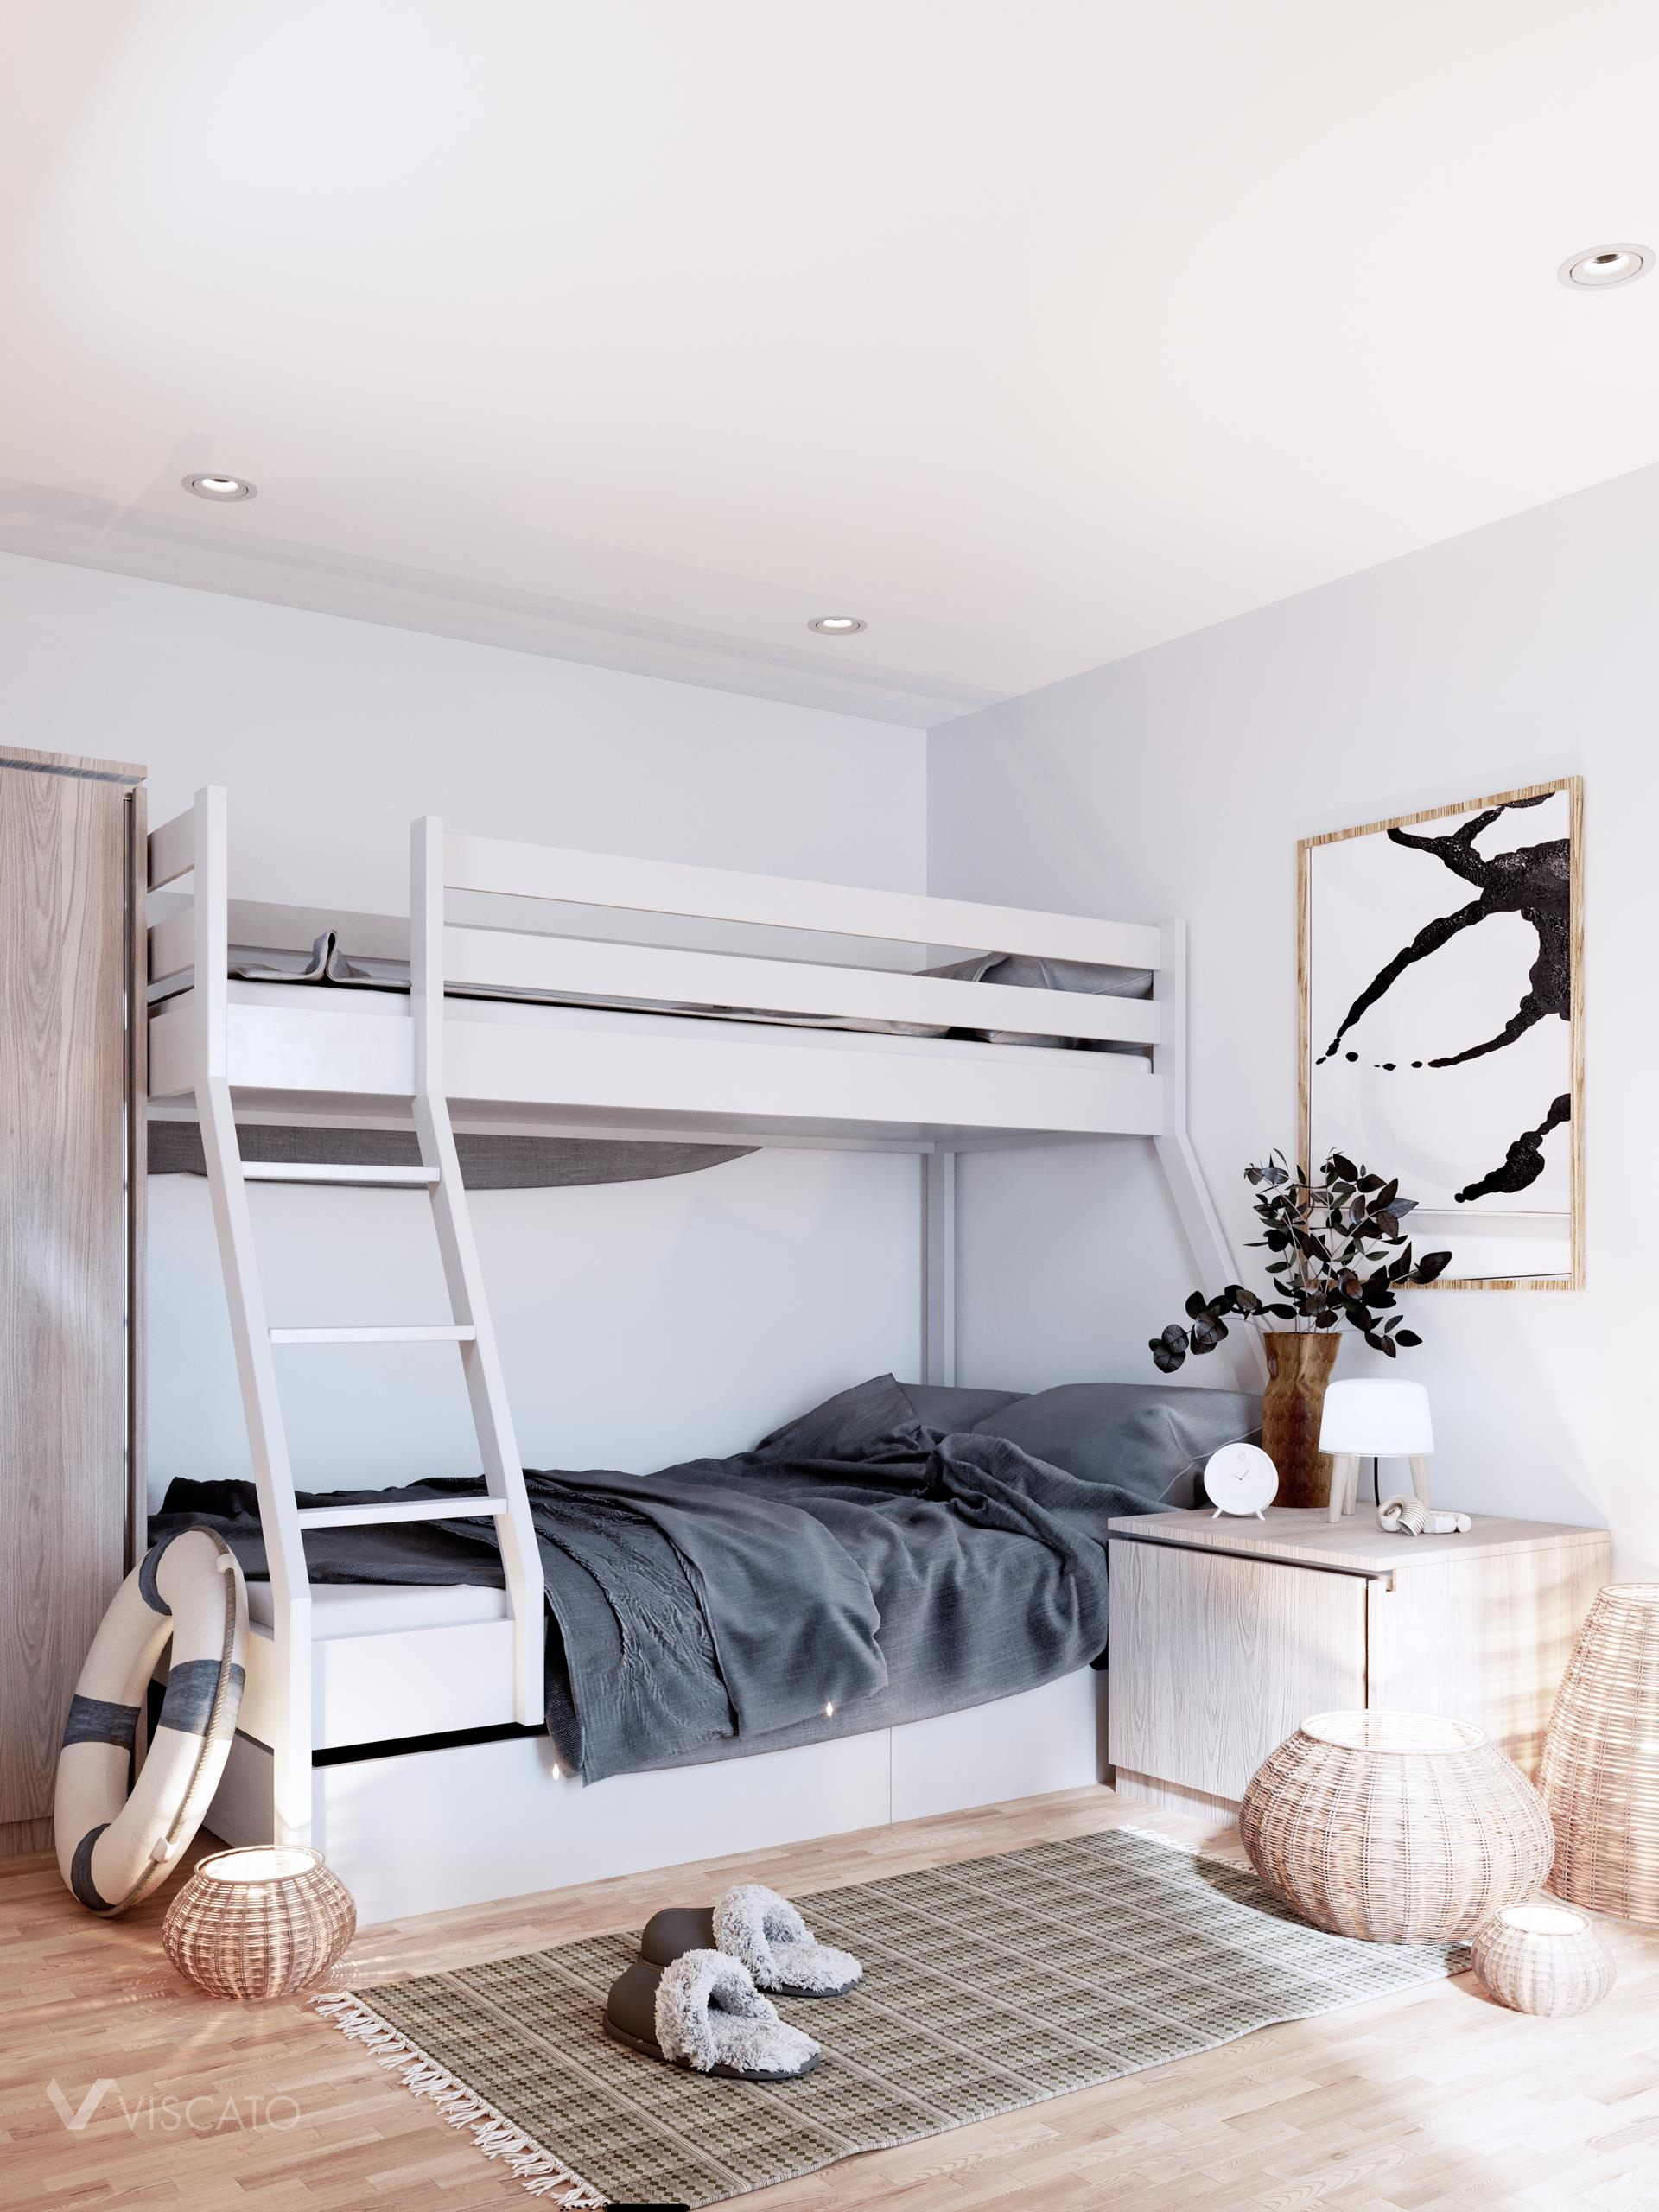 Two-story bed, Viscato 3D